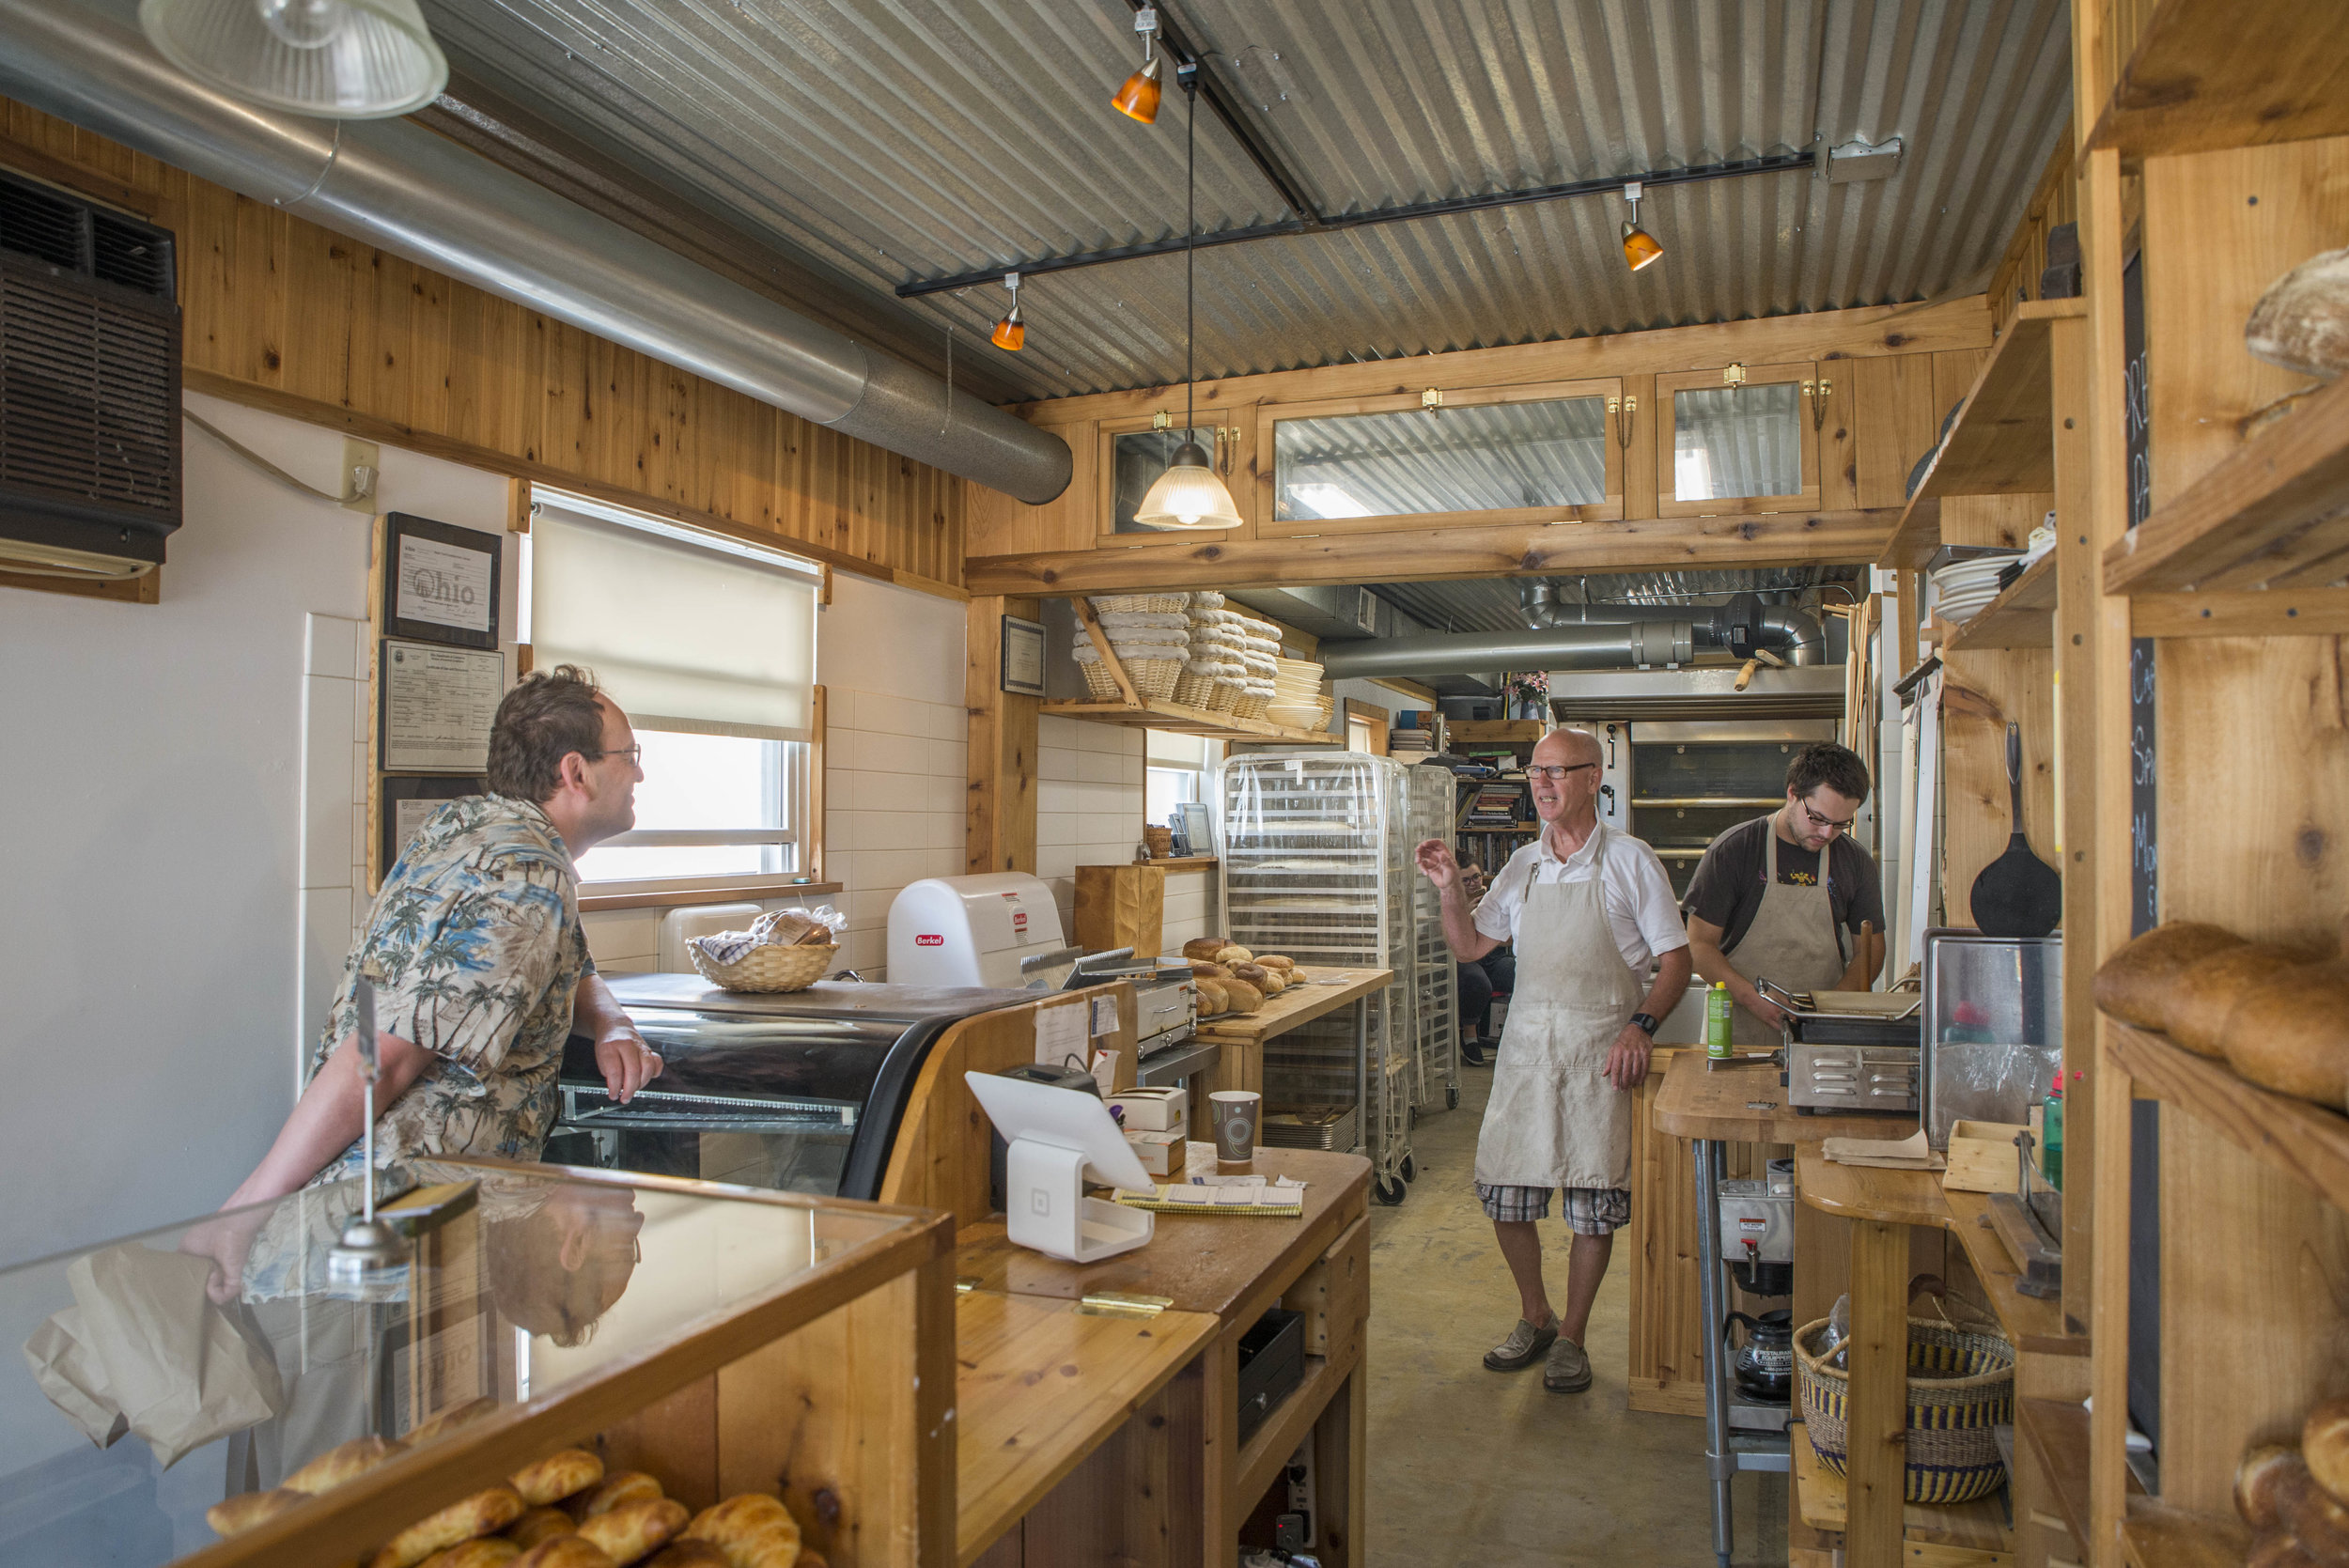 A customer talks to proprietor of Athens Bread Company, Doug Wistendahl (middle) in Athens, Ohio on September 9, 2016.